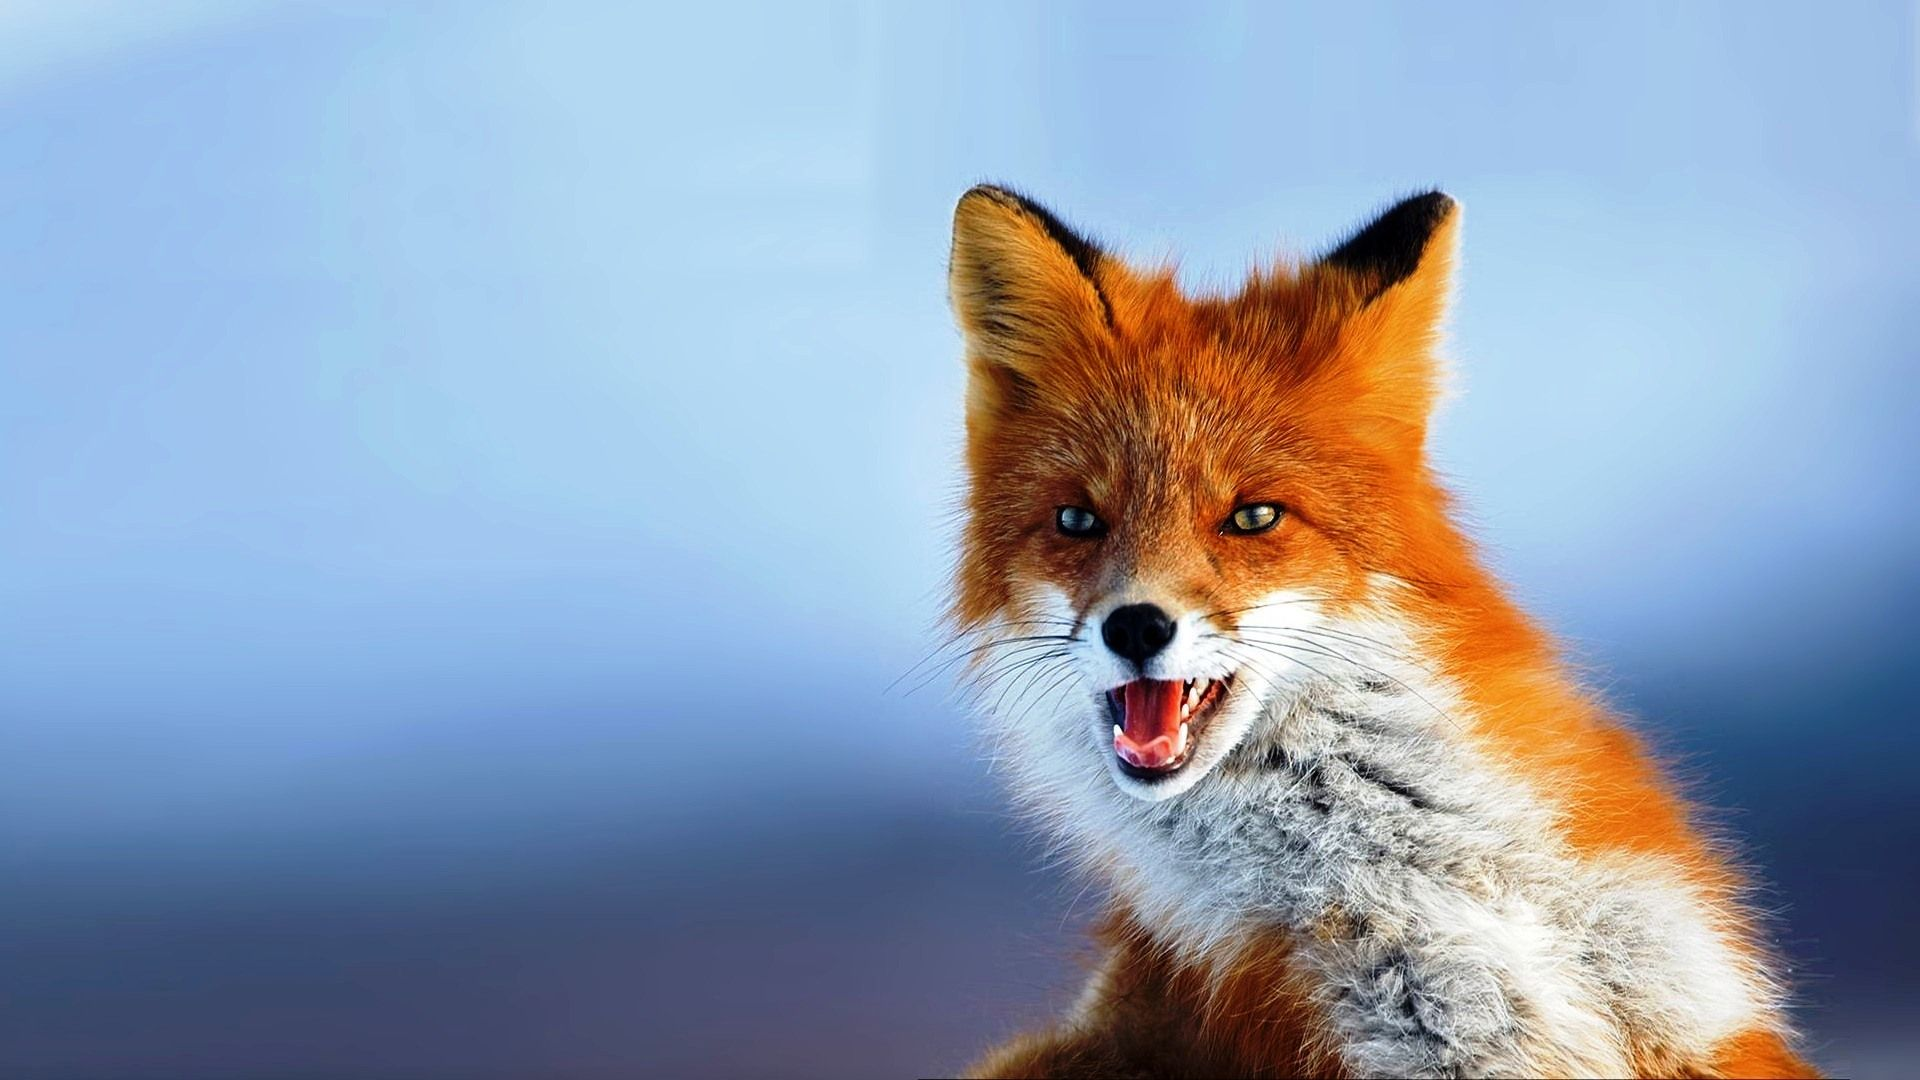 Rubiks Cube Animals beautiful, Pet fox, Animal wallpaper